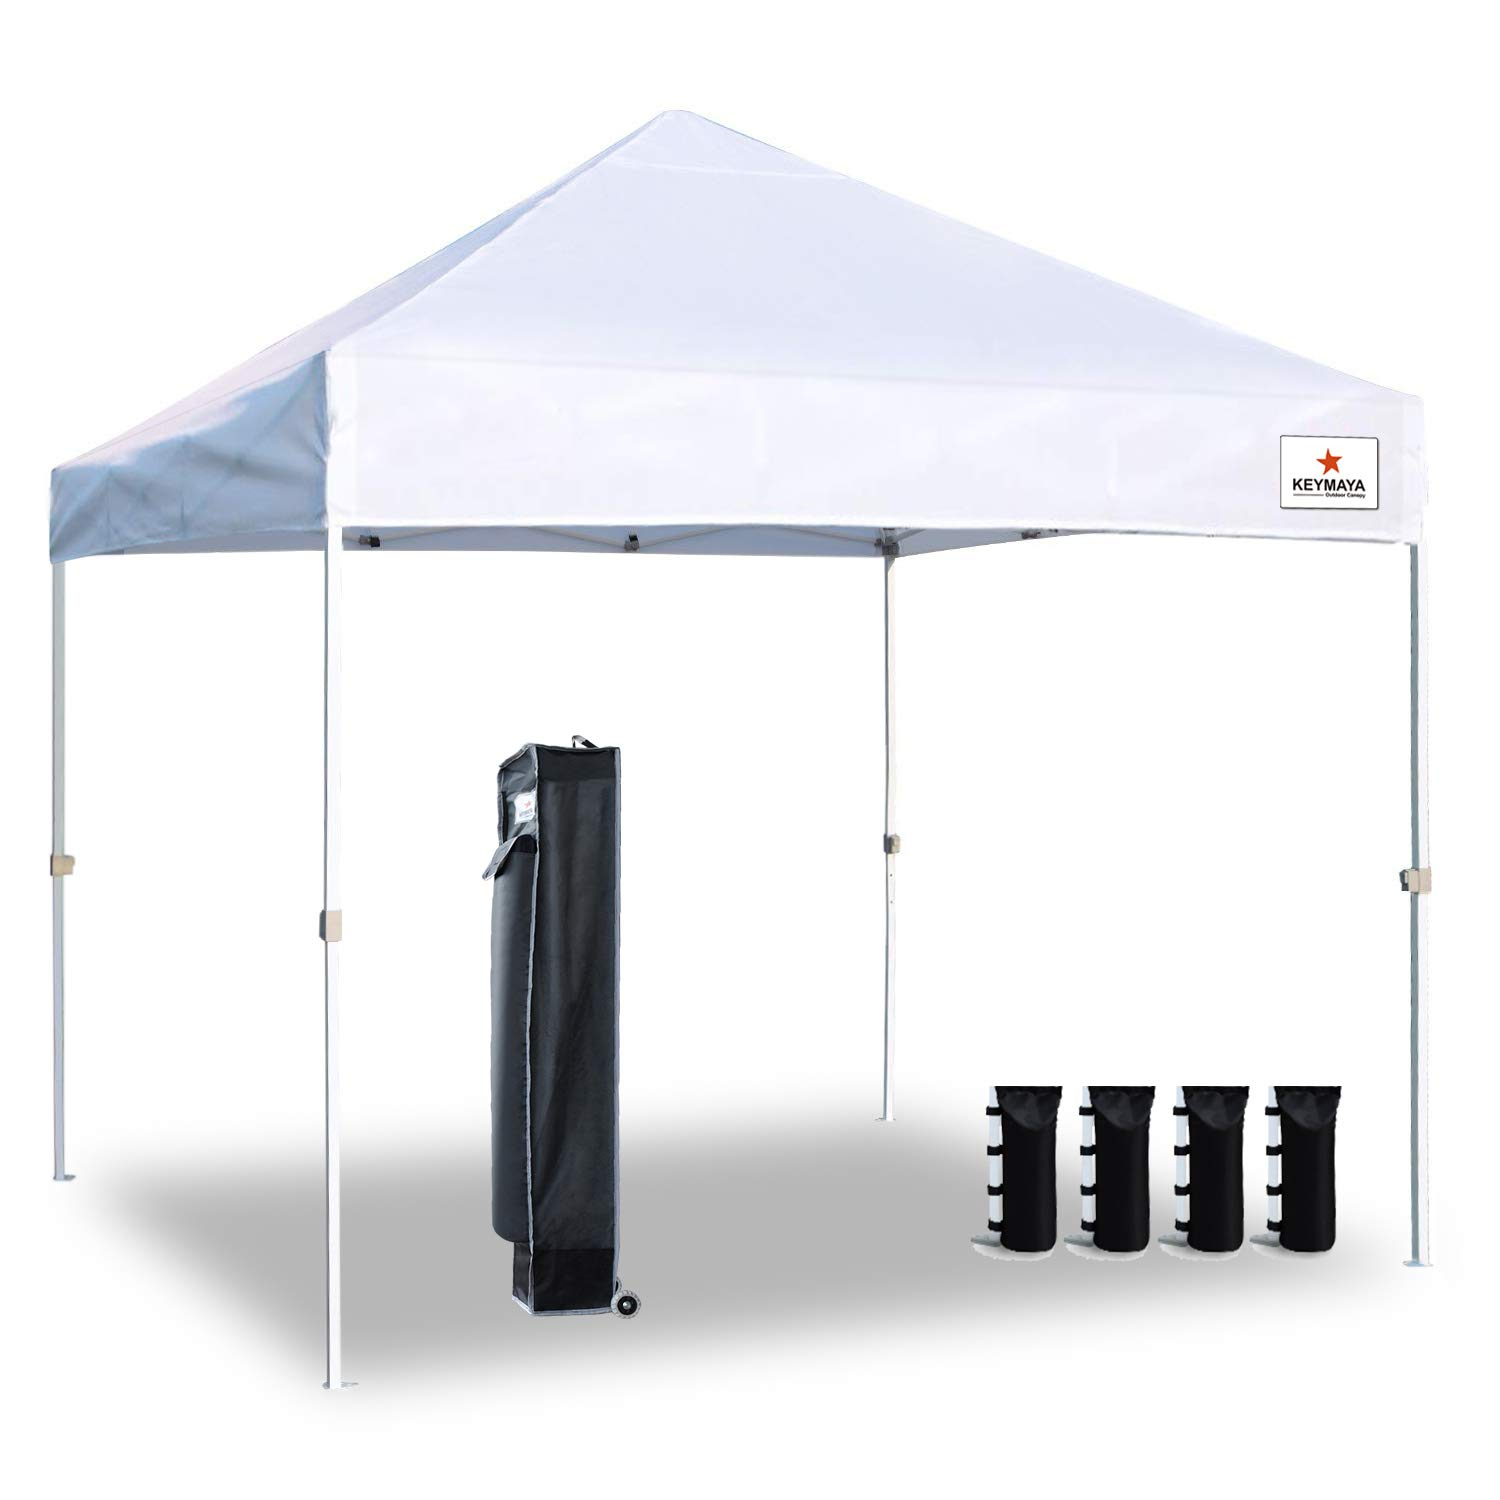 Keymaya Ez Commercial Instant Tent Heavy Duty Pop-up Canopy Shelter Bonus Weight Bag 4-pc Pack (10x10, 1A# White)